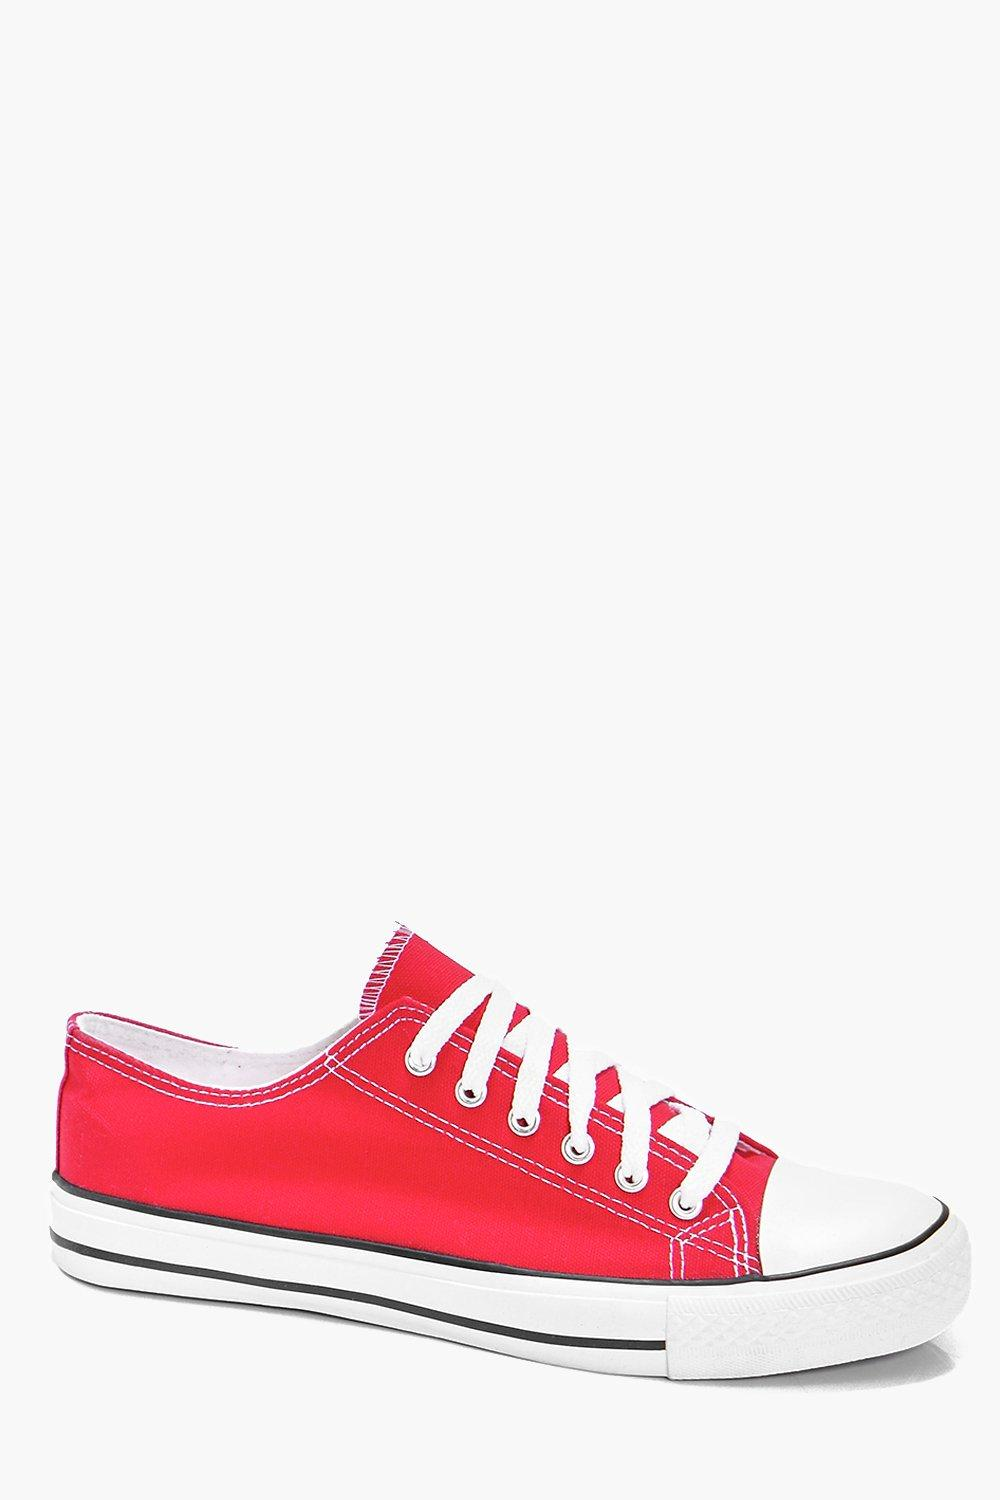 Red Canvas Plimsolls